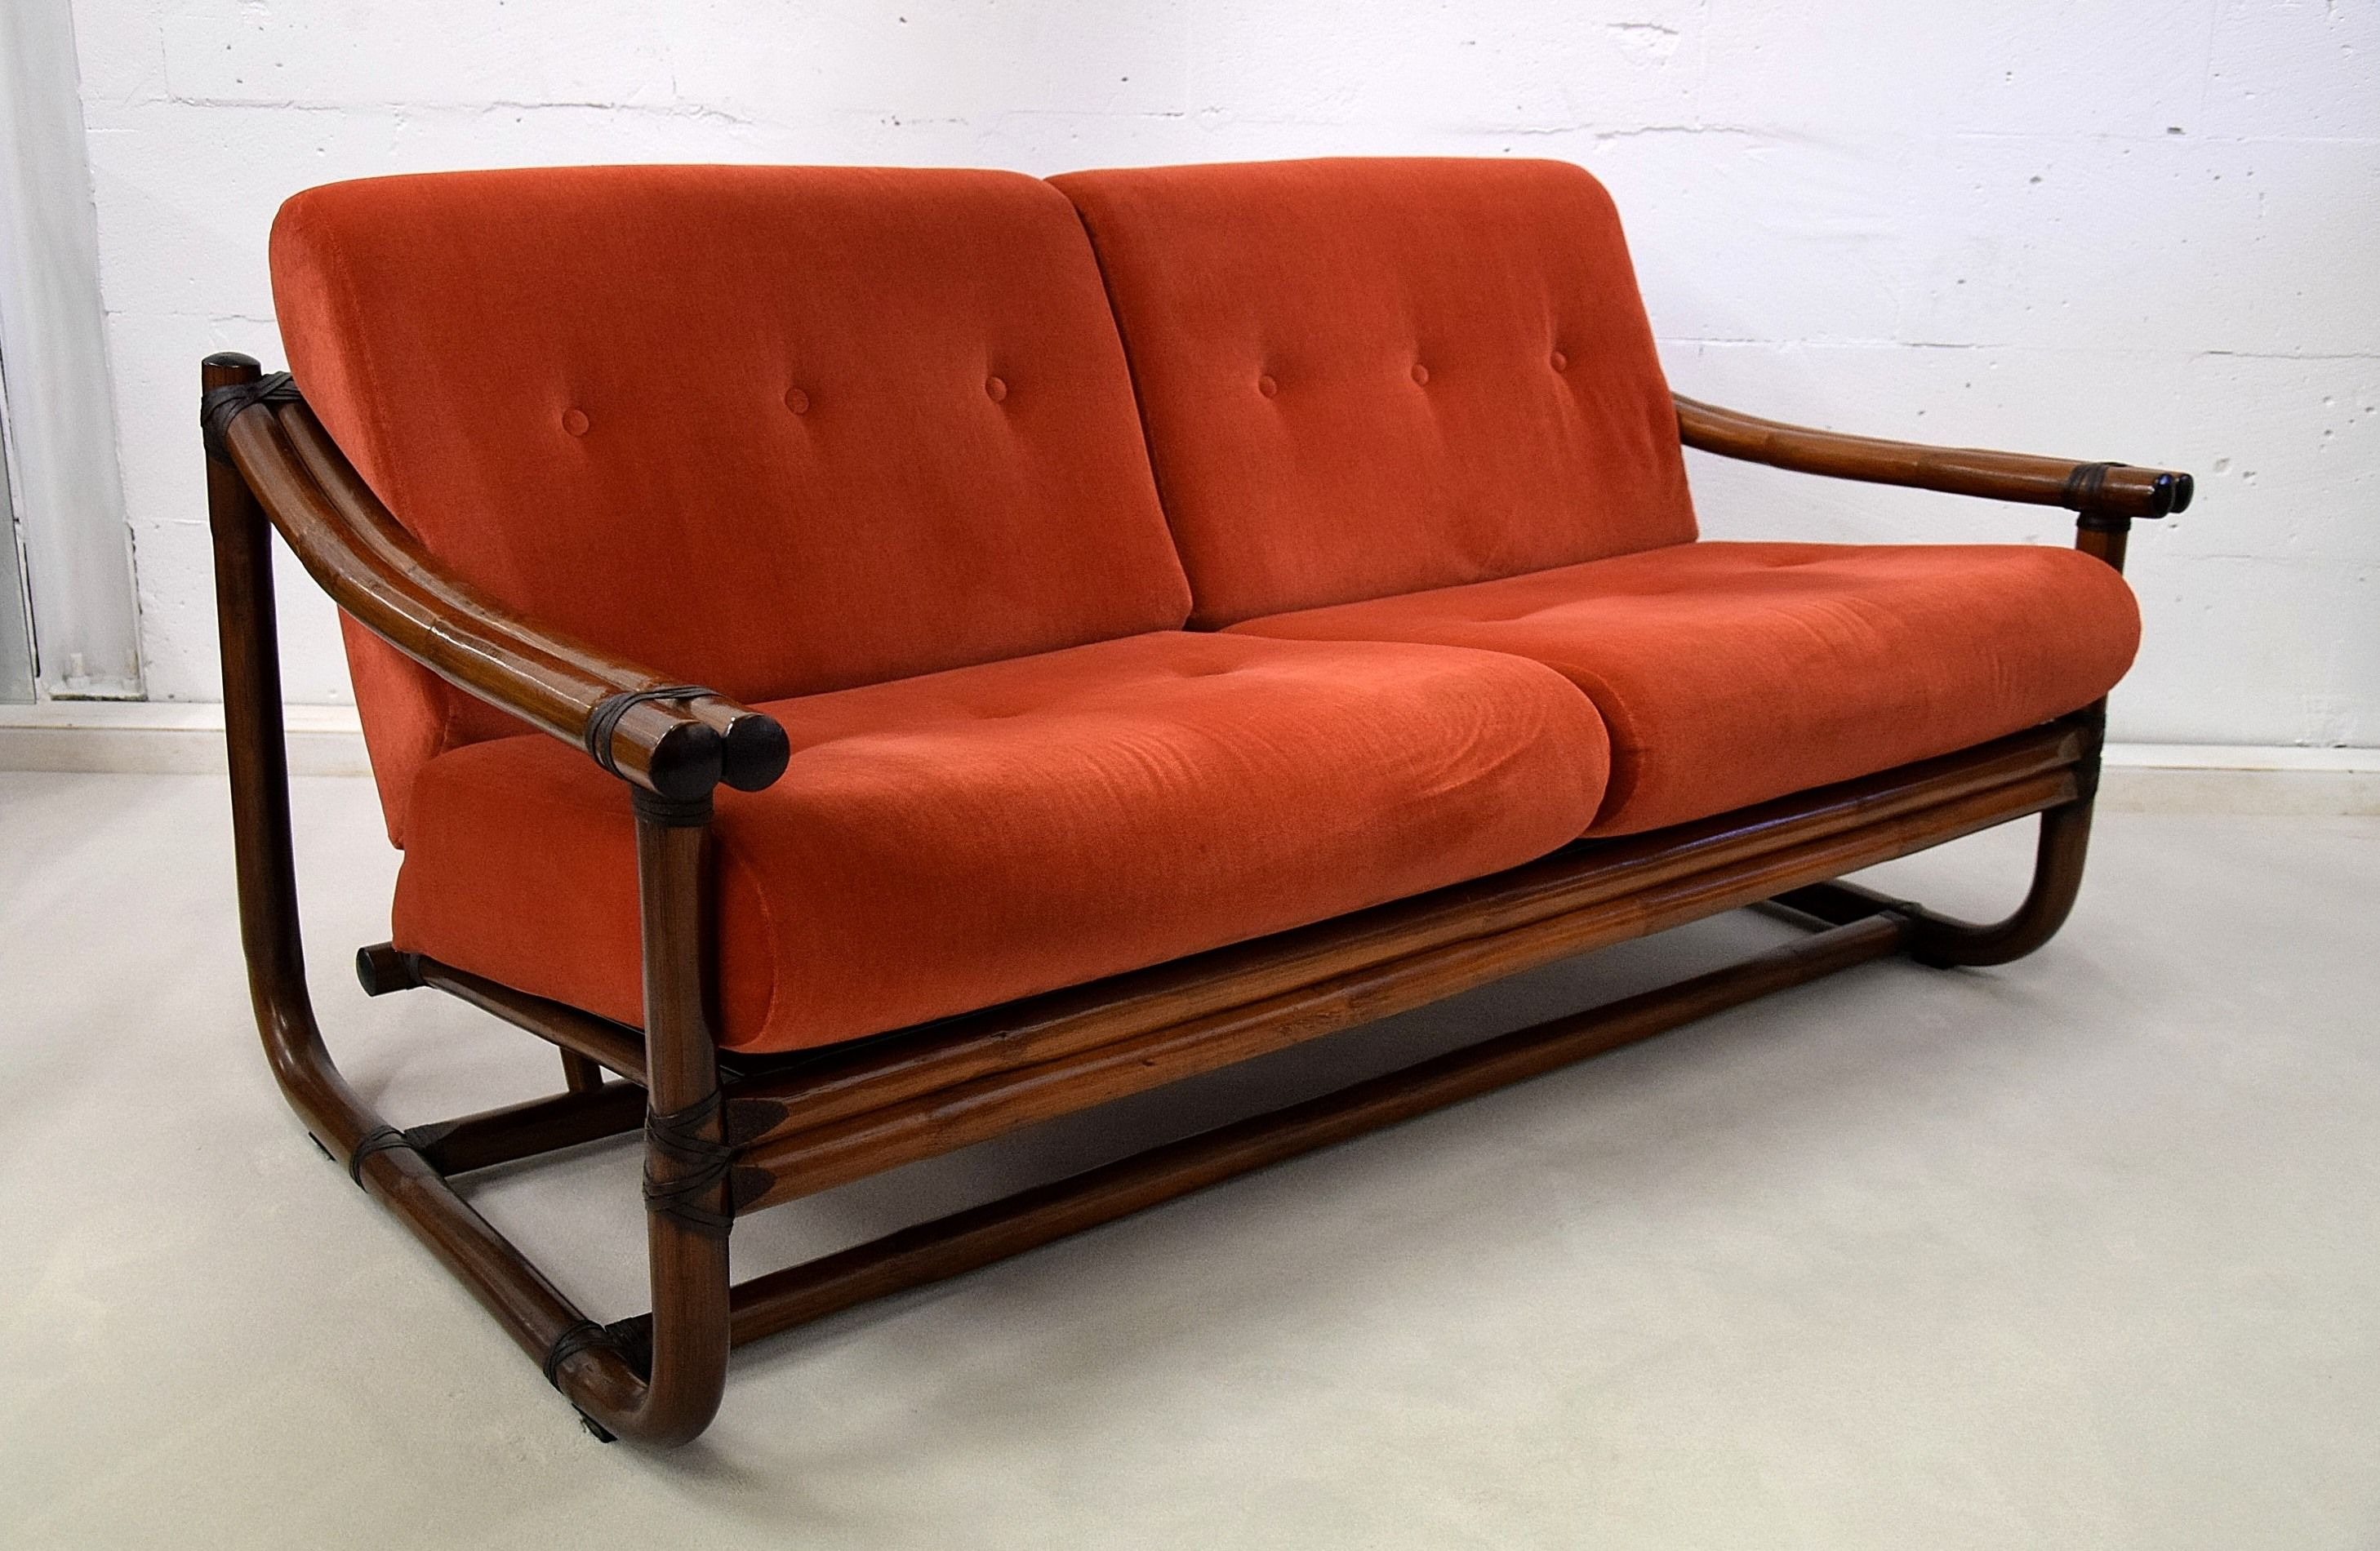 1960 Two Seater Italian Lounge Sofa Bamboo A Beautiful Very Well Made Bamboo Sofa From The 1960 S A Great Stylish Pie Lounge Sofa Couch Upholstery Bamboo Sofa